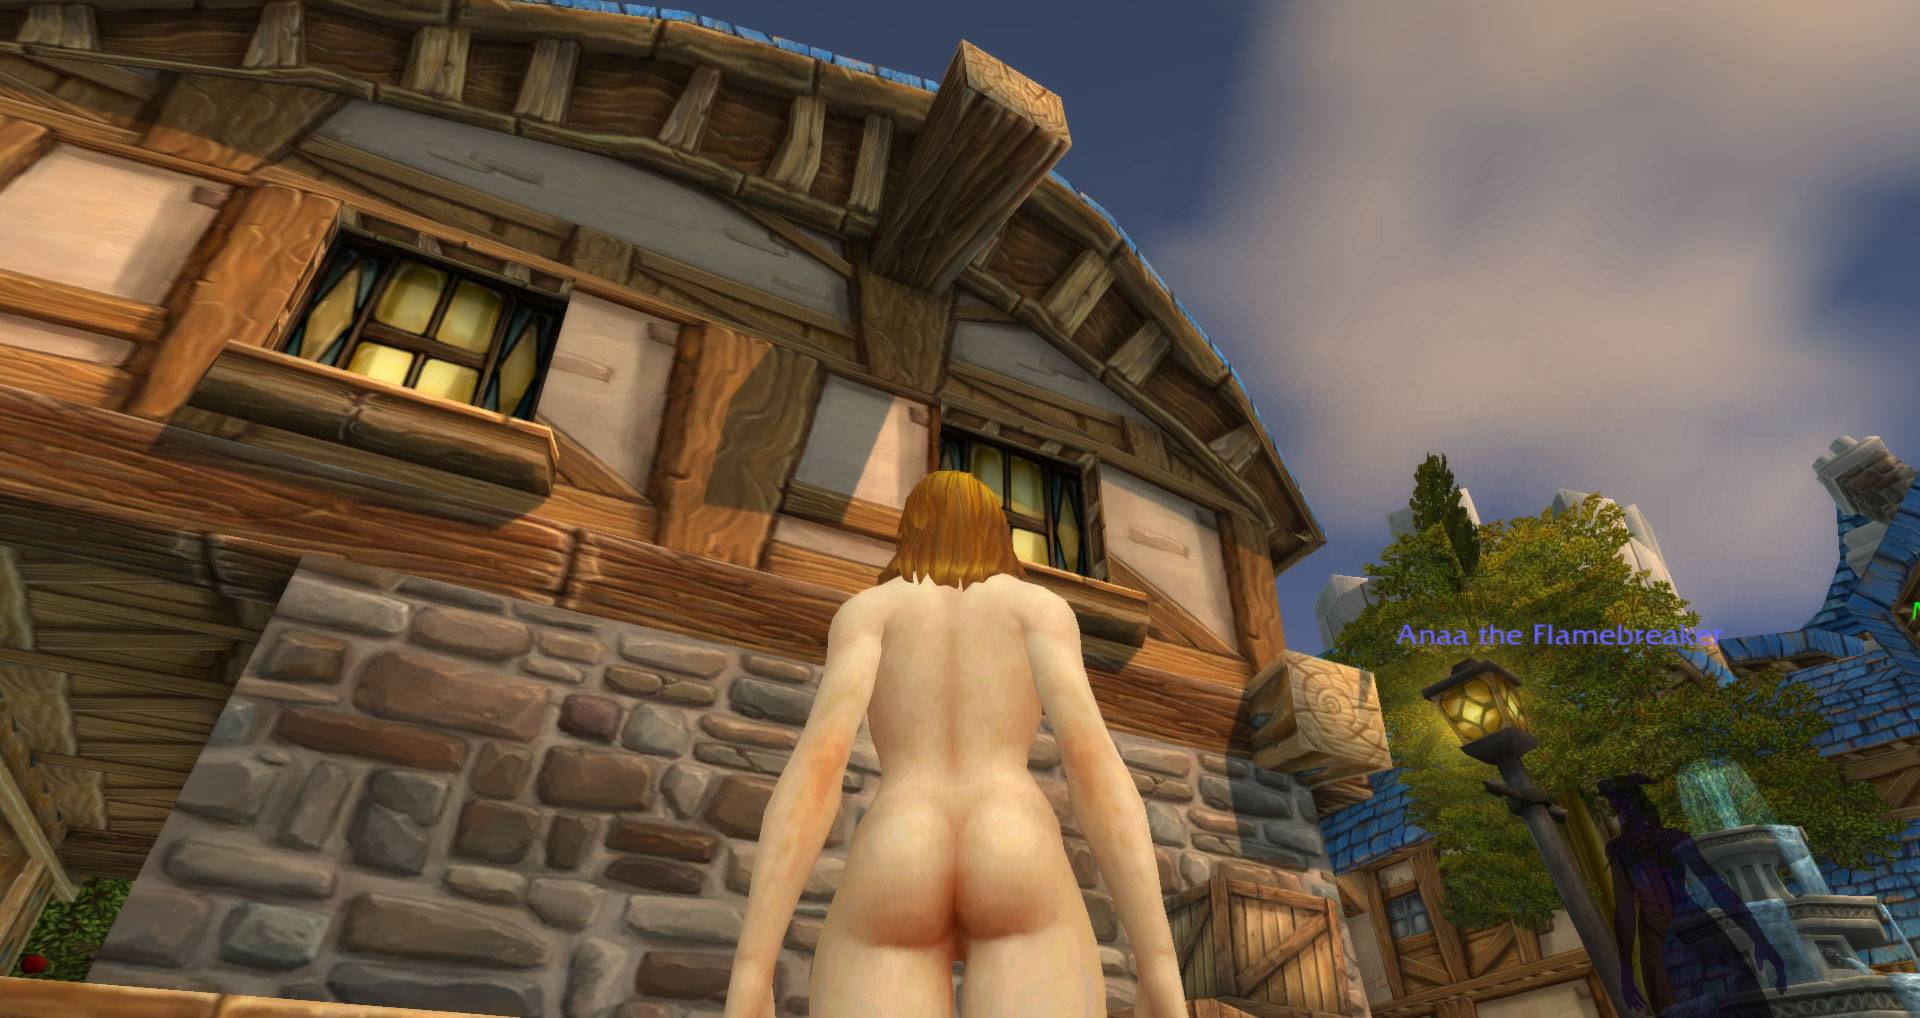 World of warcraft busty nude patch nude pic